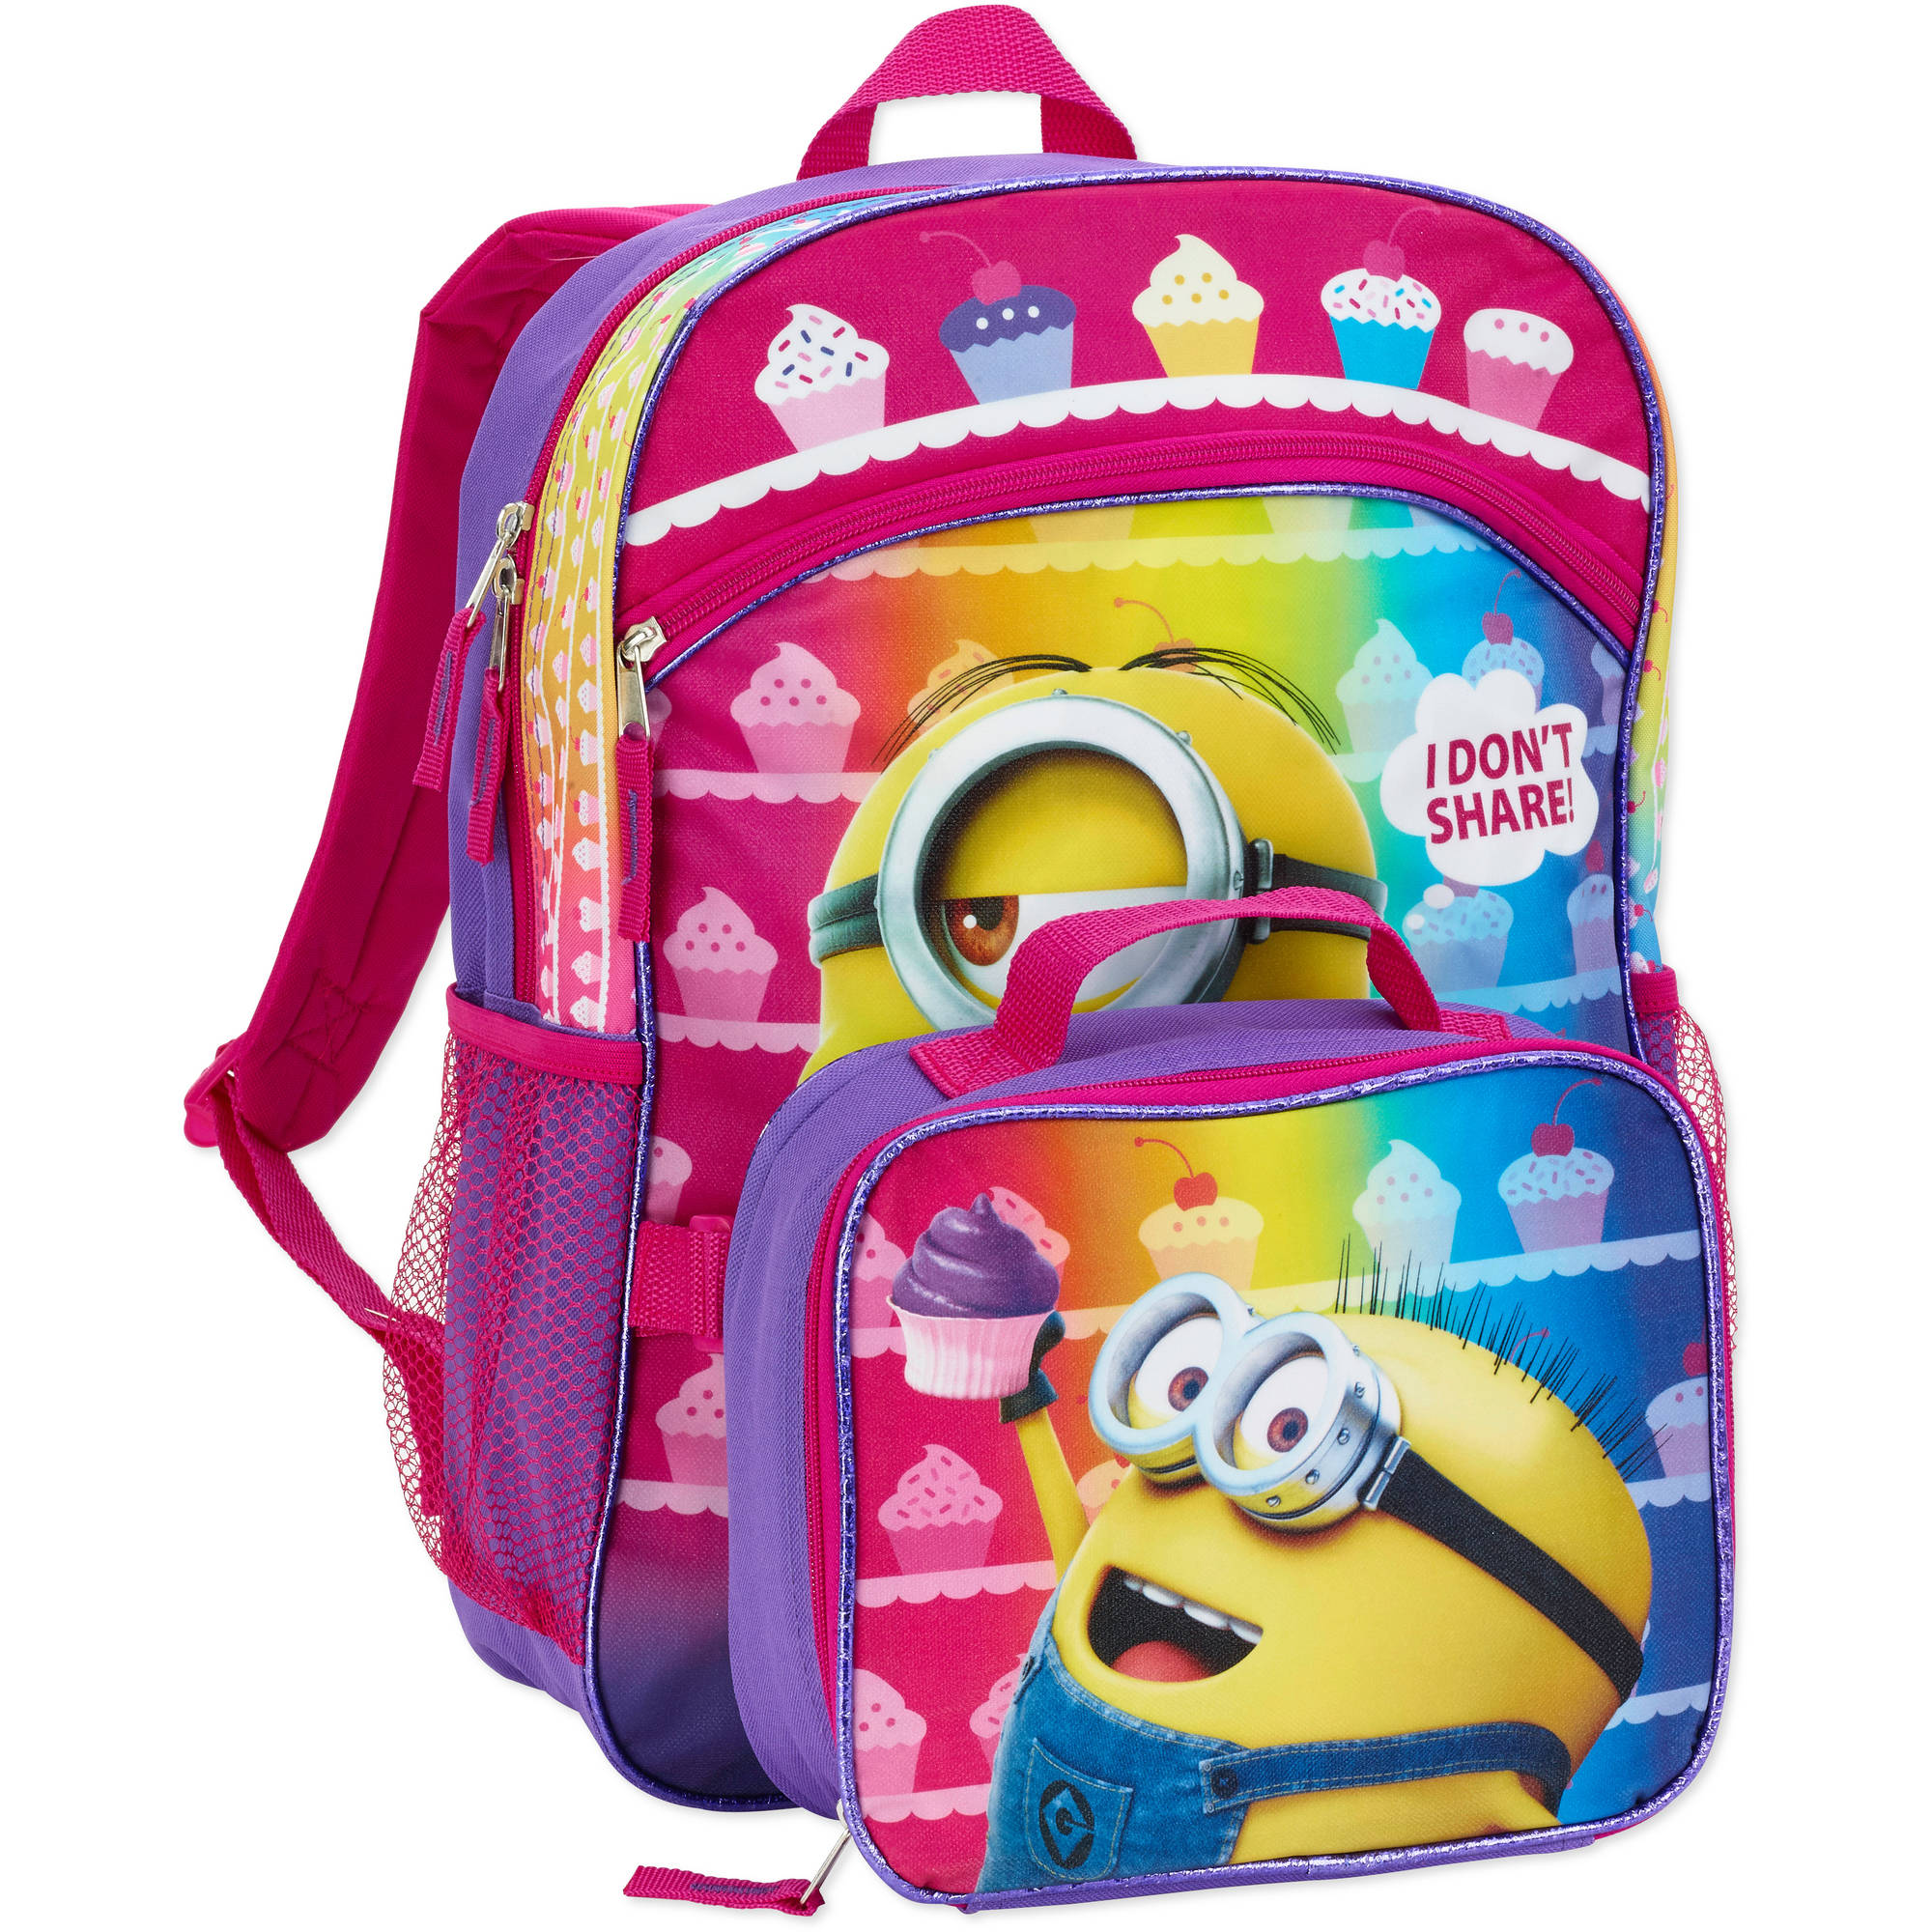 "Despicable Me I Don't Share 16"" Backpack with Lunch Tote"